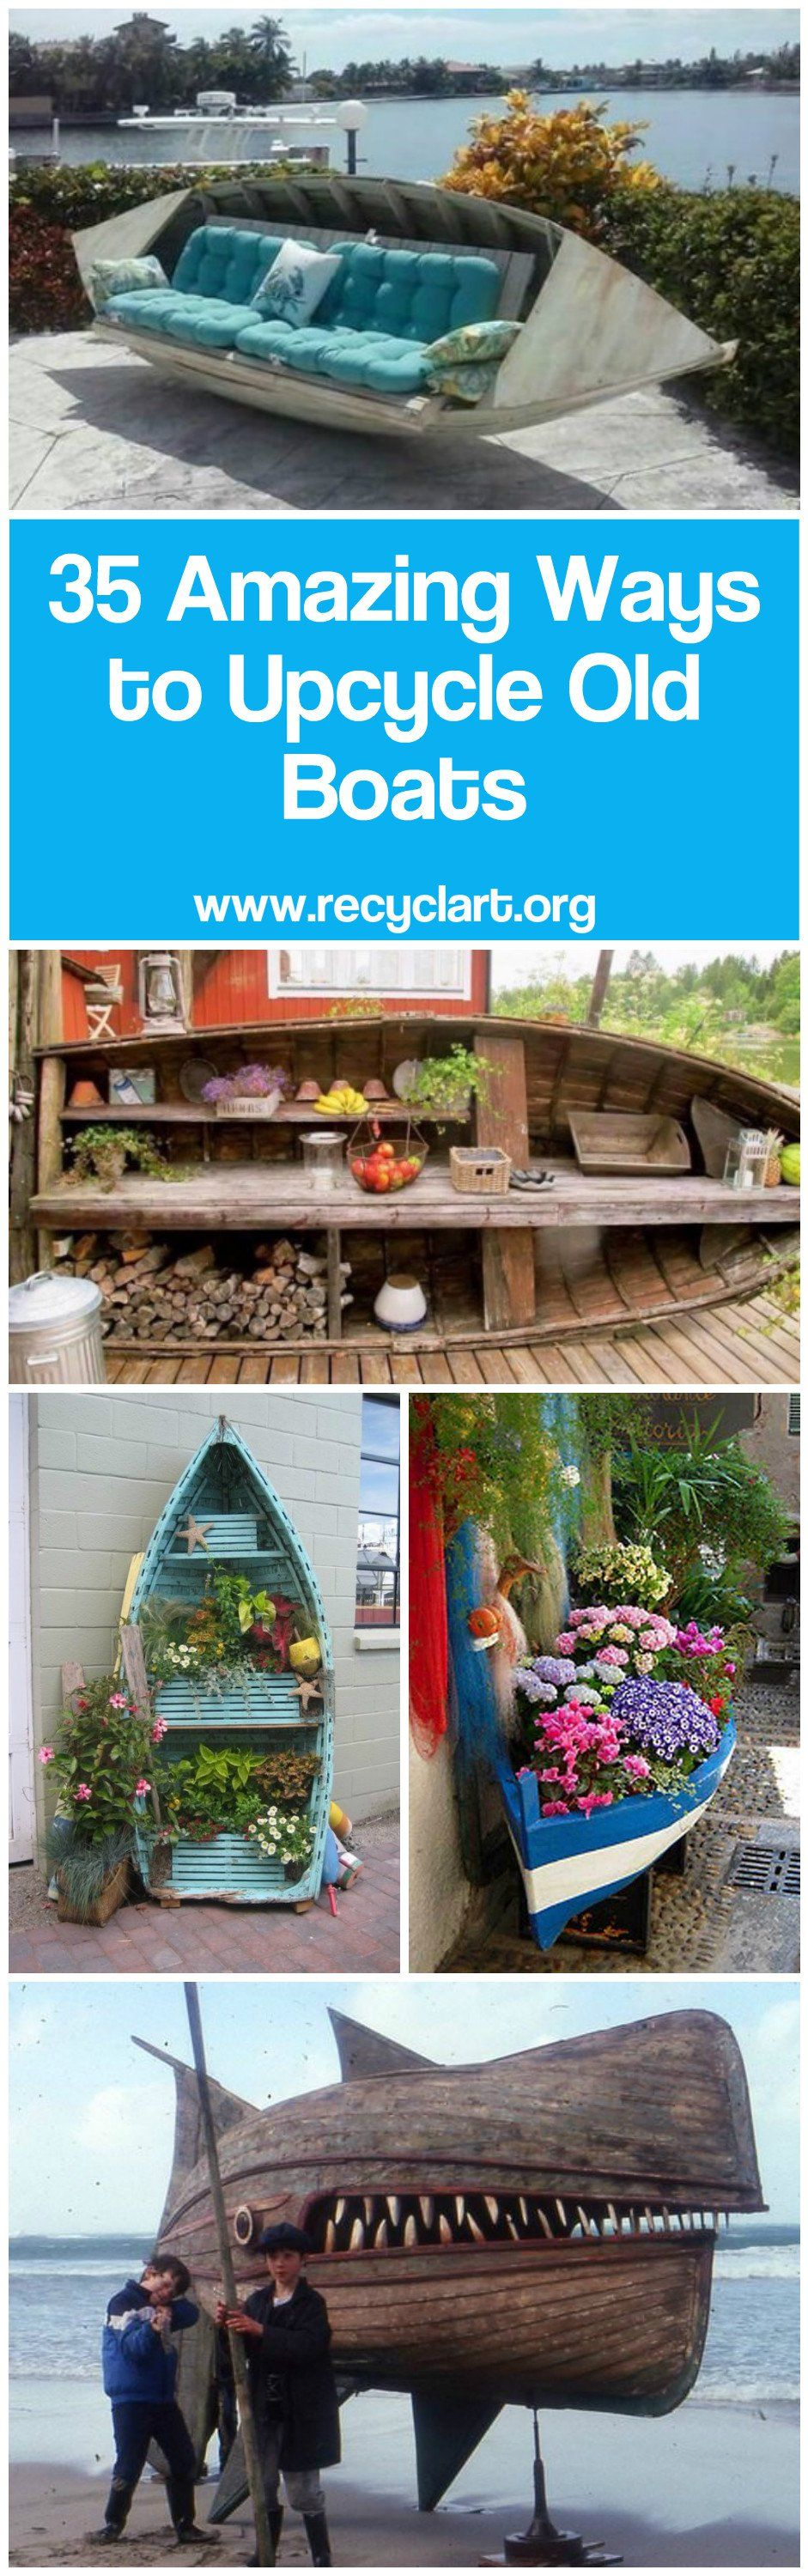 35 Amazing Ways to Upcycle Old Boats | Pallet Ideas | Pinterest ...